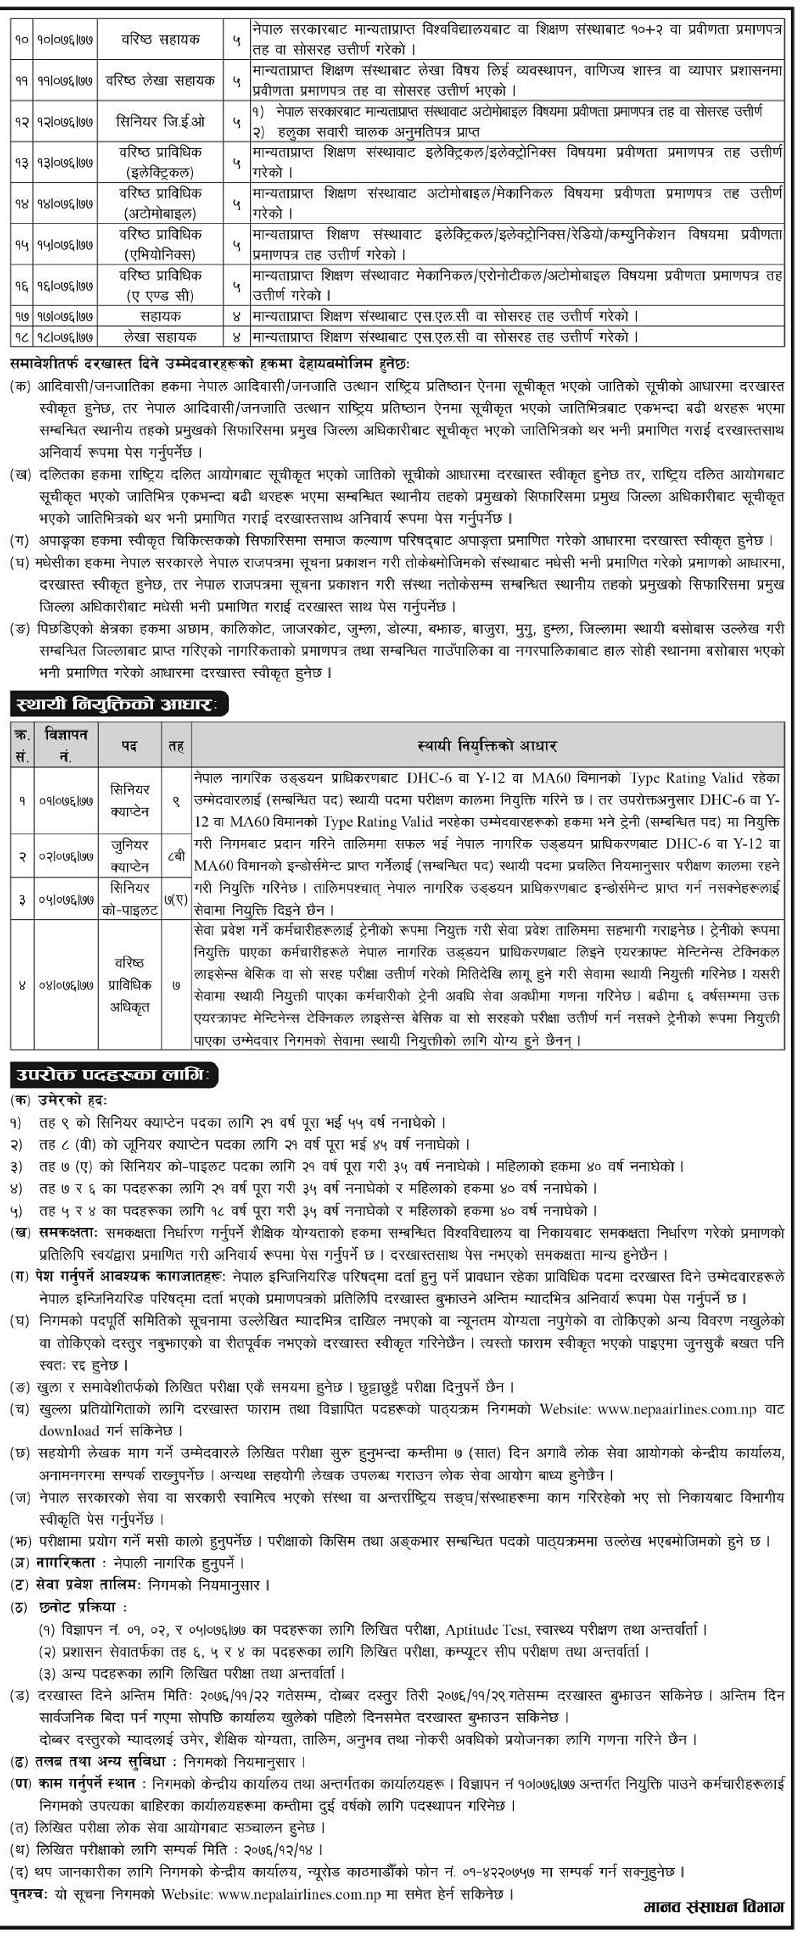 Nepal-Airlines-Vacancy